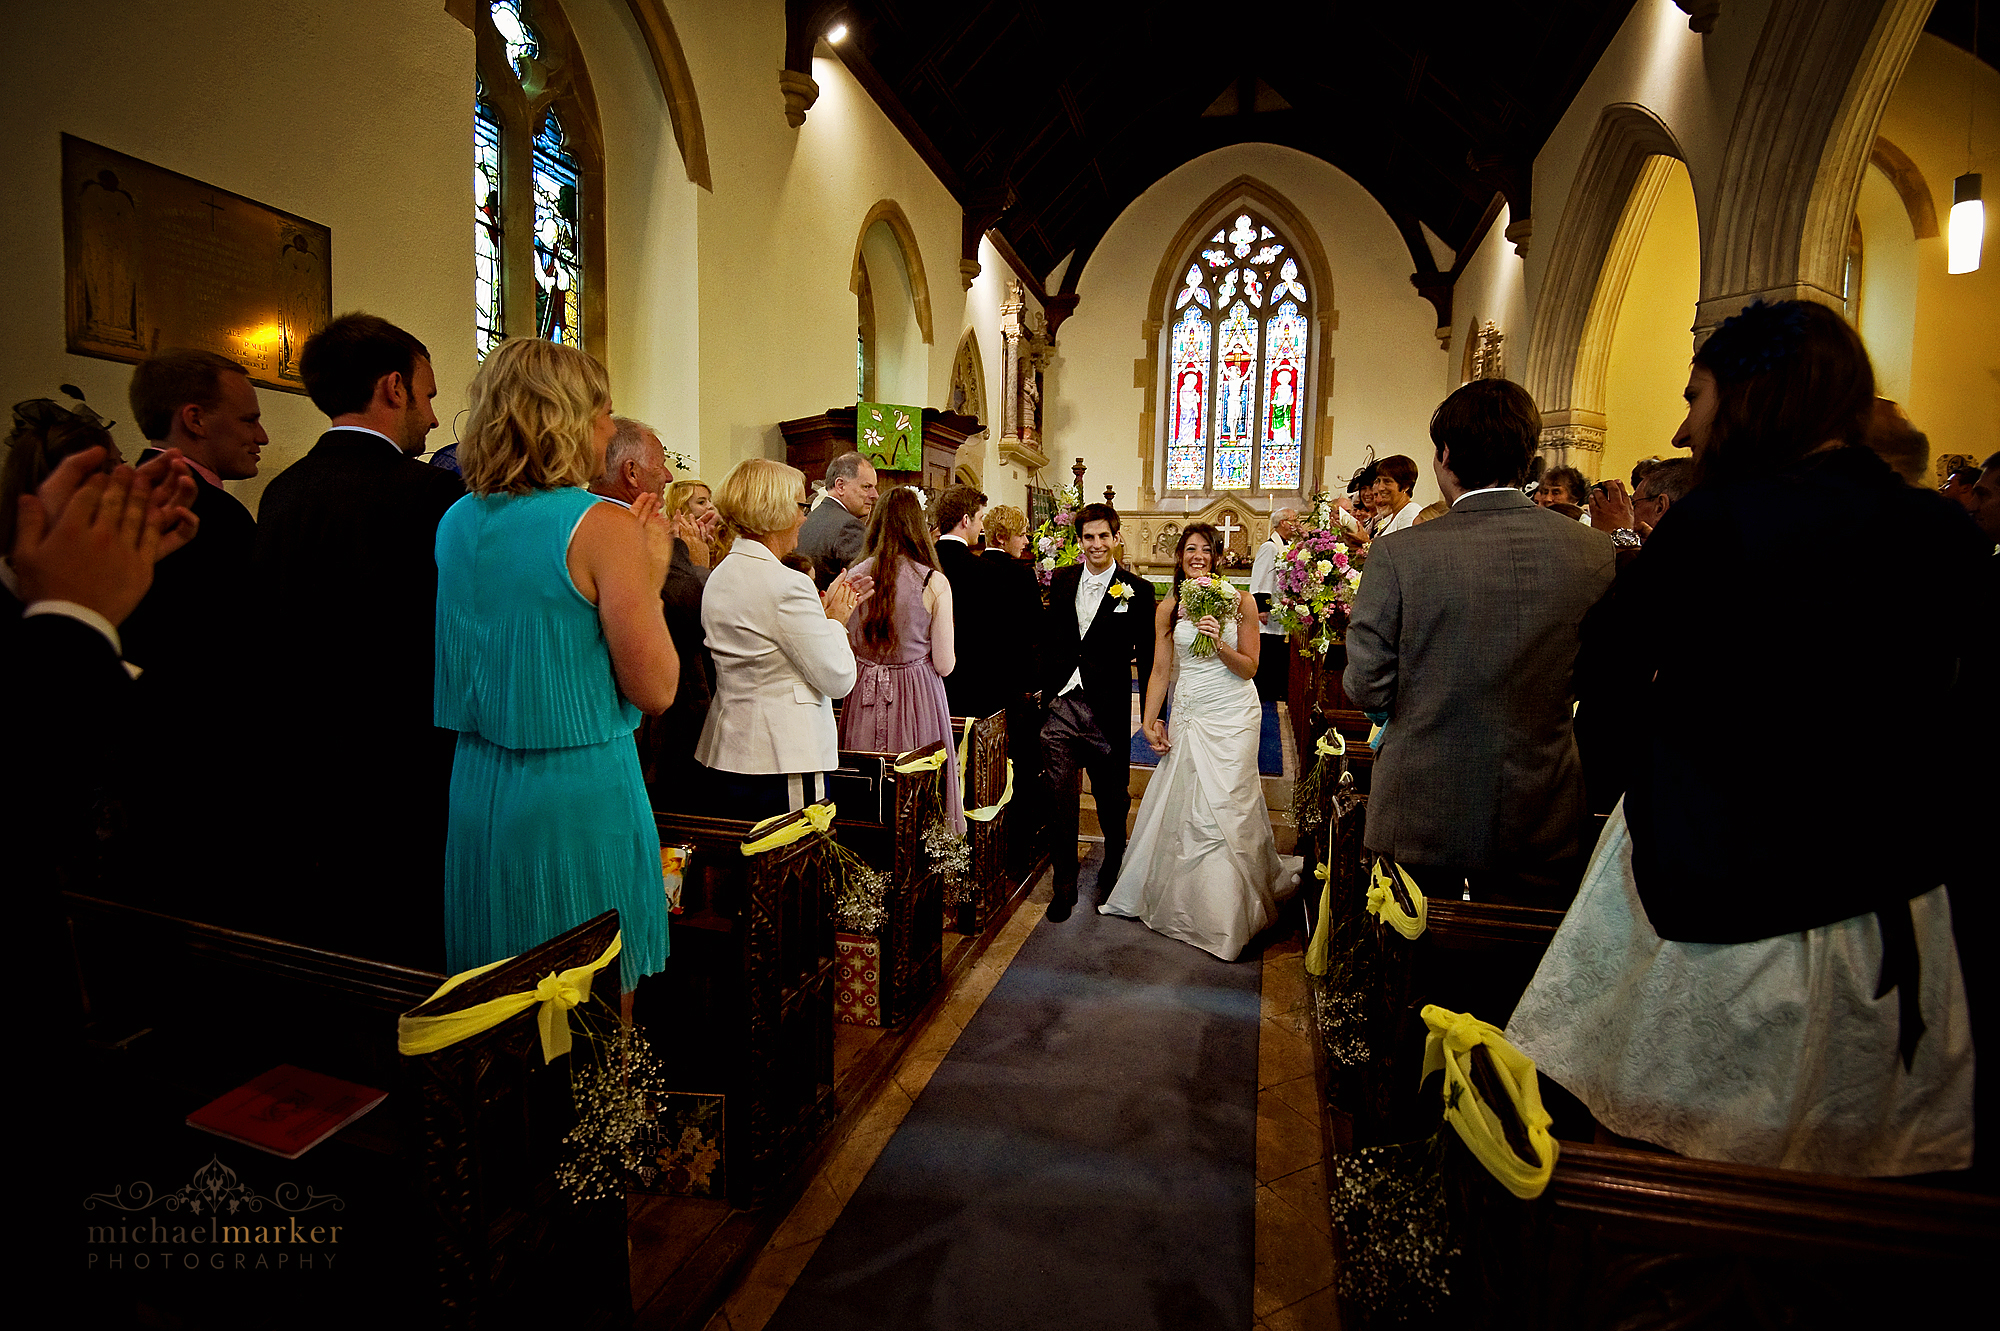 Bride and groom walking down the aisle of Bickleigh Church in Devon